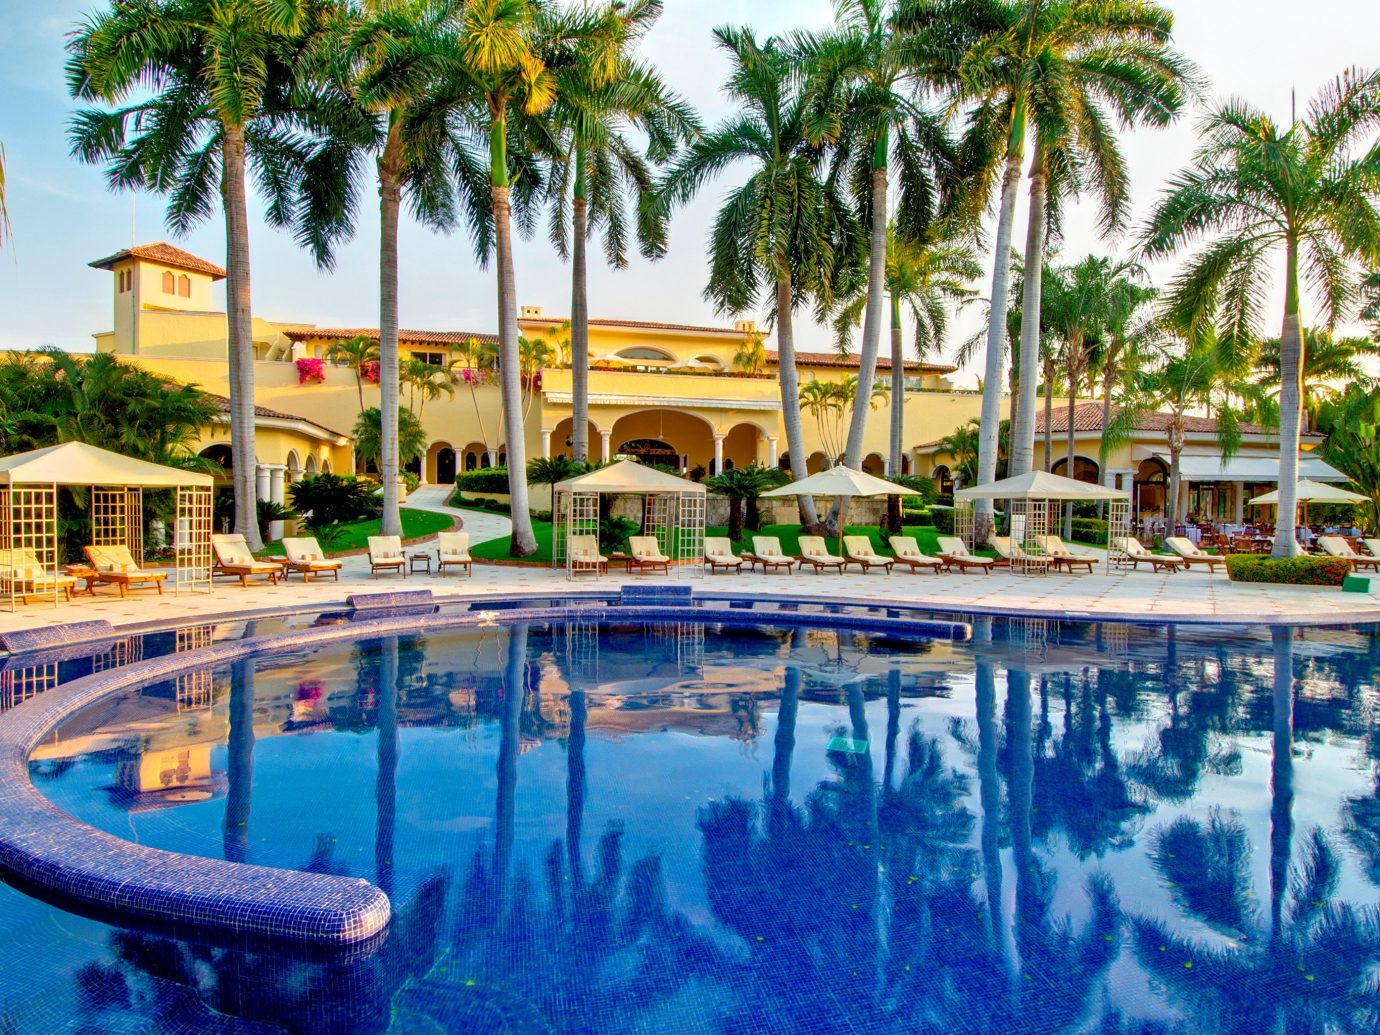 All-Inclusive Resorts Elegant Hotels Living Lounge Luxury Modern Pool tree outdoor sky Resort swimming pool leisure property palm estate vacation condominium resort town mansion lined